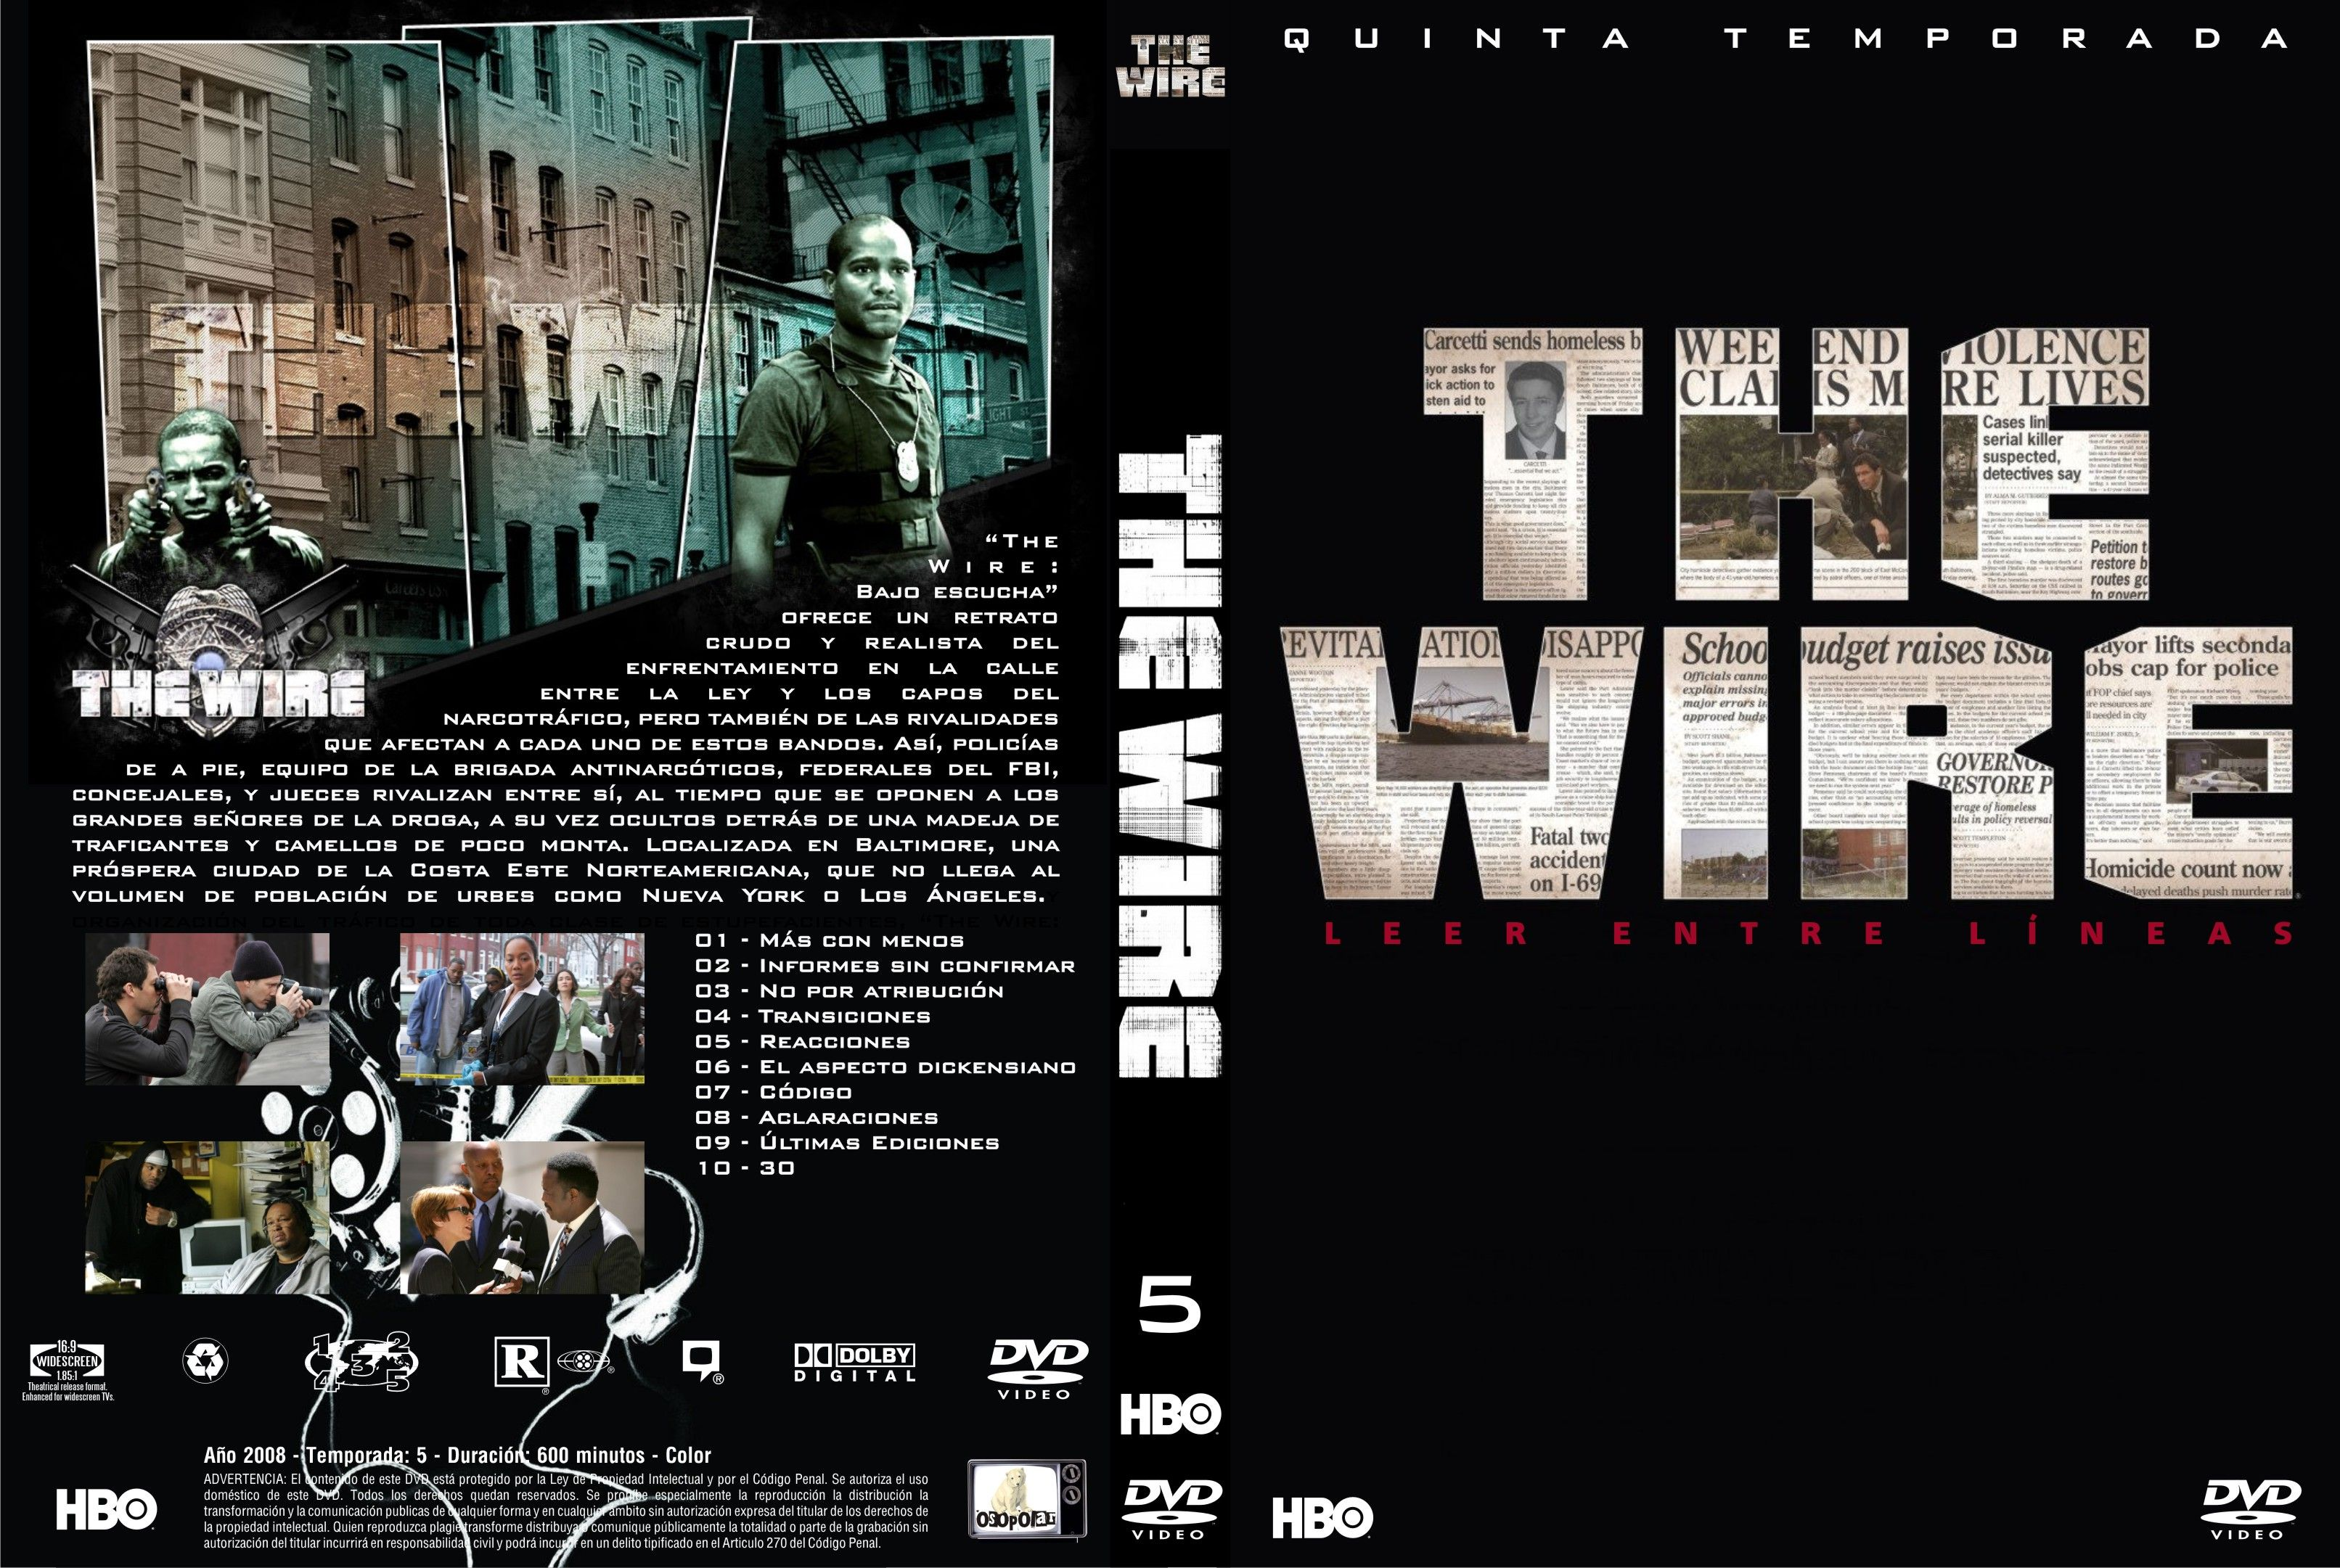 The Wire Imdb | Covers Box Sk The Wire S4 5 Imdb Dl5 High Quality Dvd